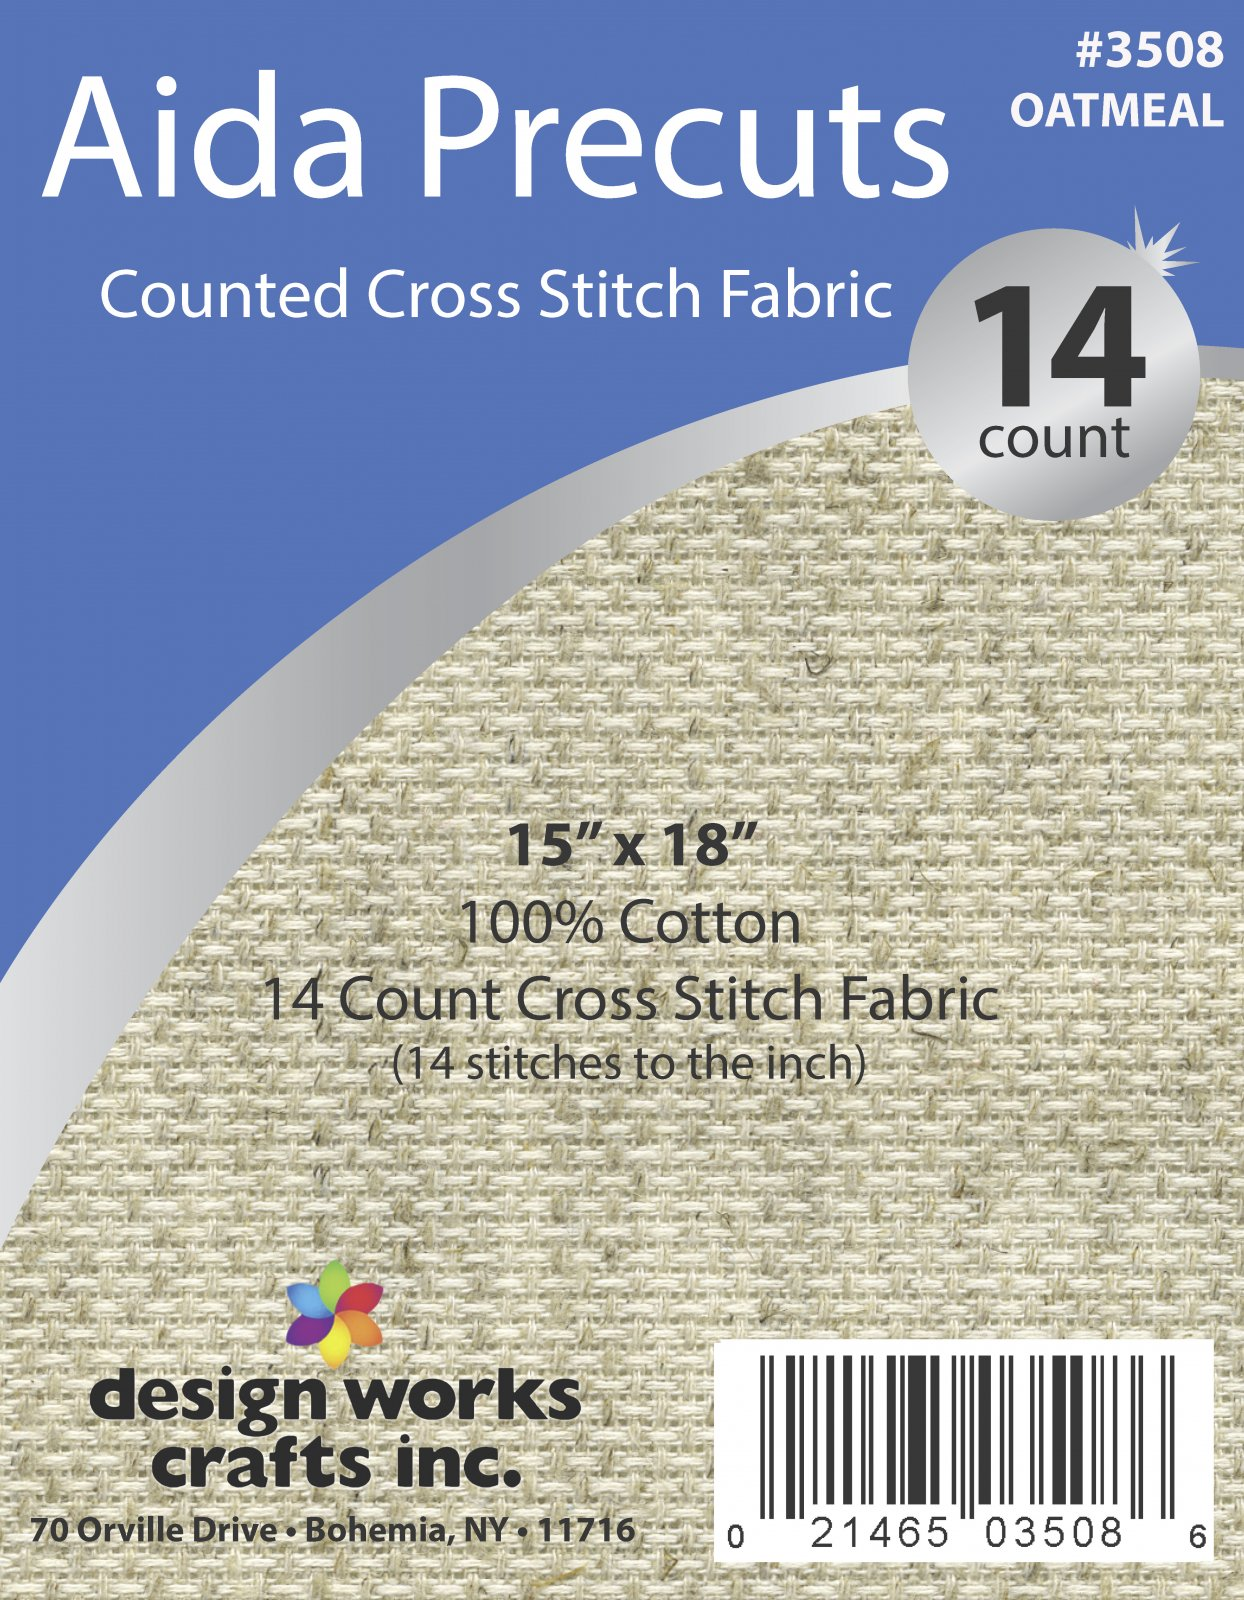 # 3508 - 14 Ct. Aida Pre-cut Counted Cross Stitch Fabric/Oatmeal - 15 x 18